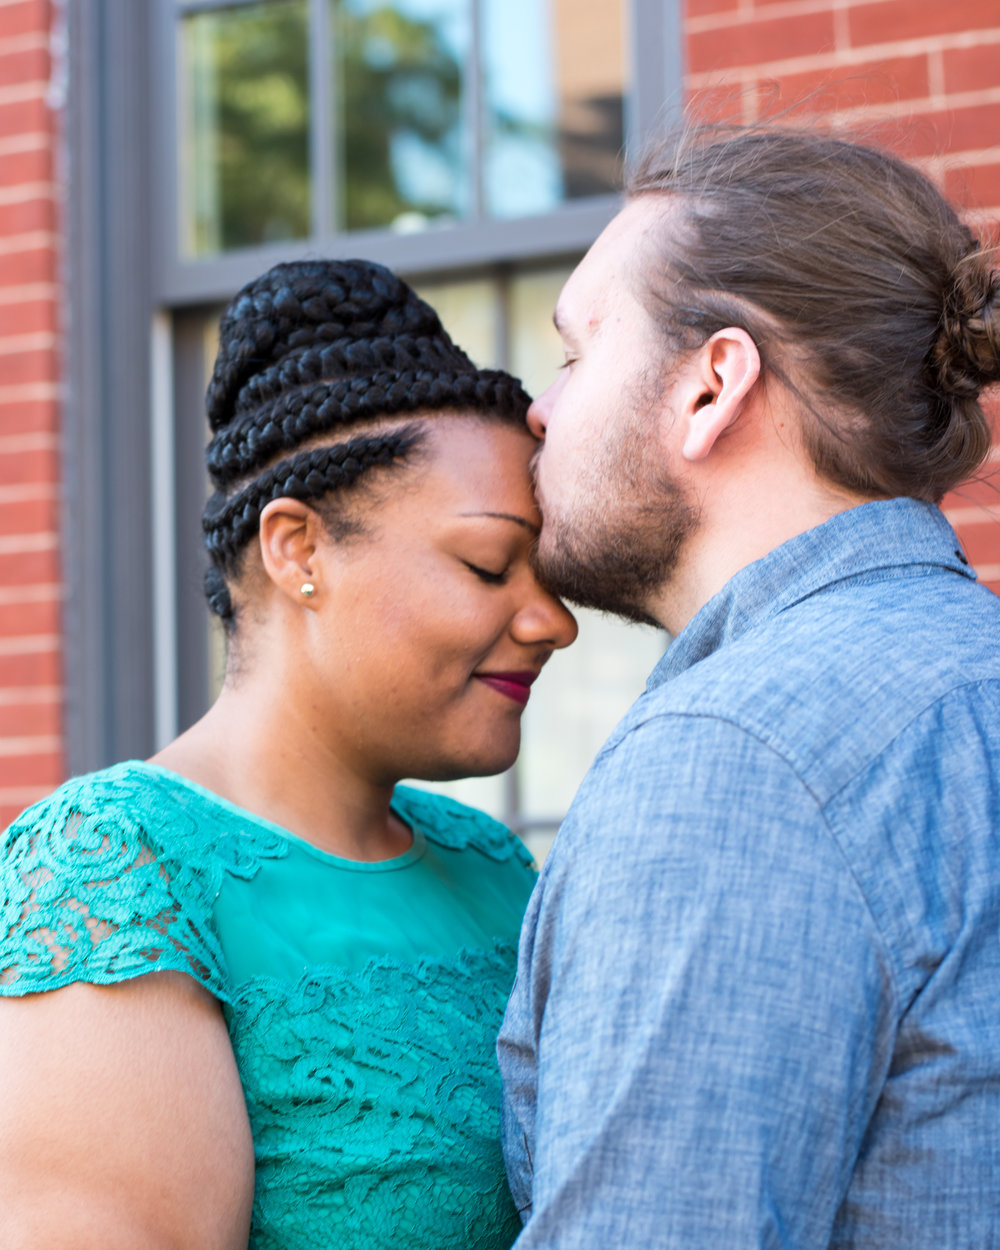 Ronnie Bliss Wedding Photography Baltimore Maryland man kisses fiancée's forehead